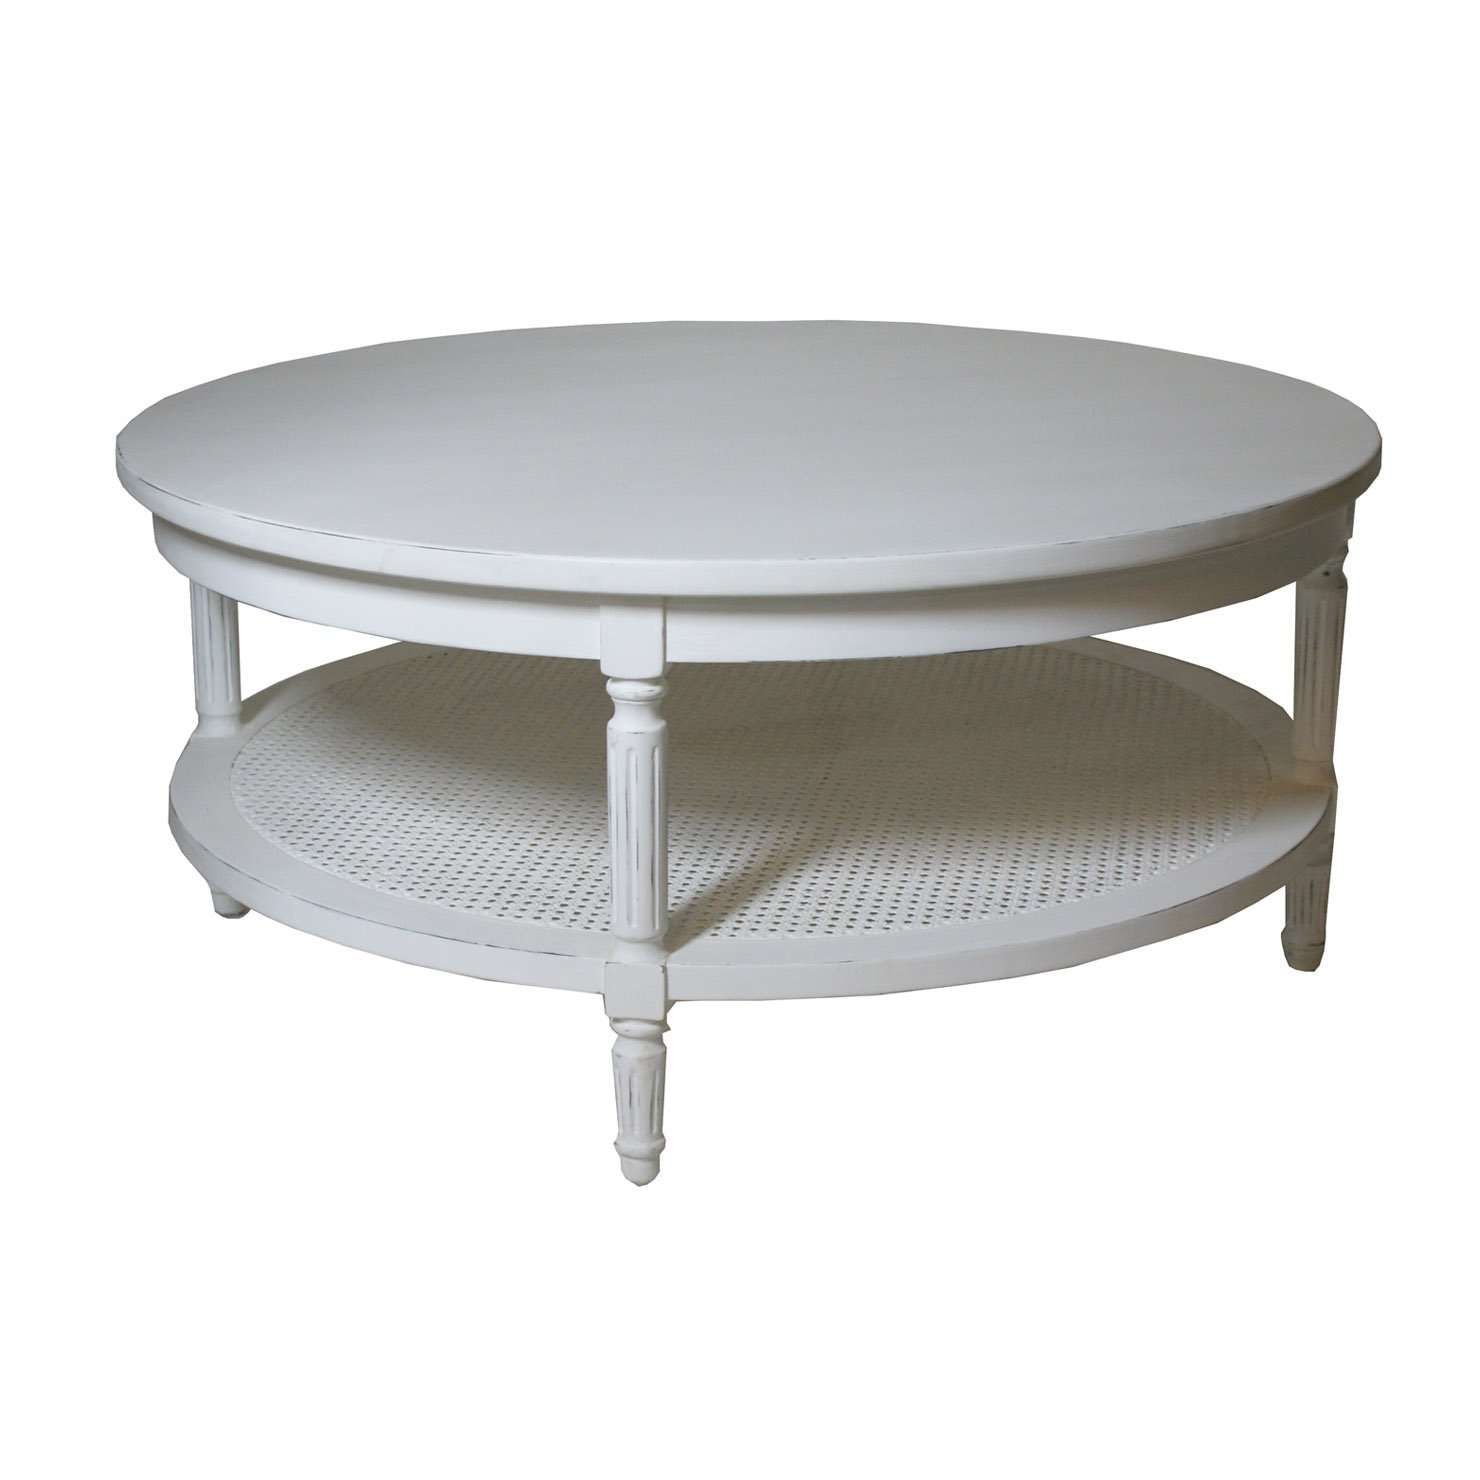 2017 Latest Modern Round White Coffee Table with Storage